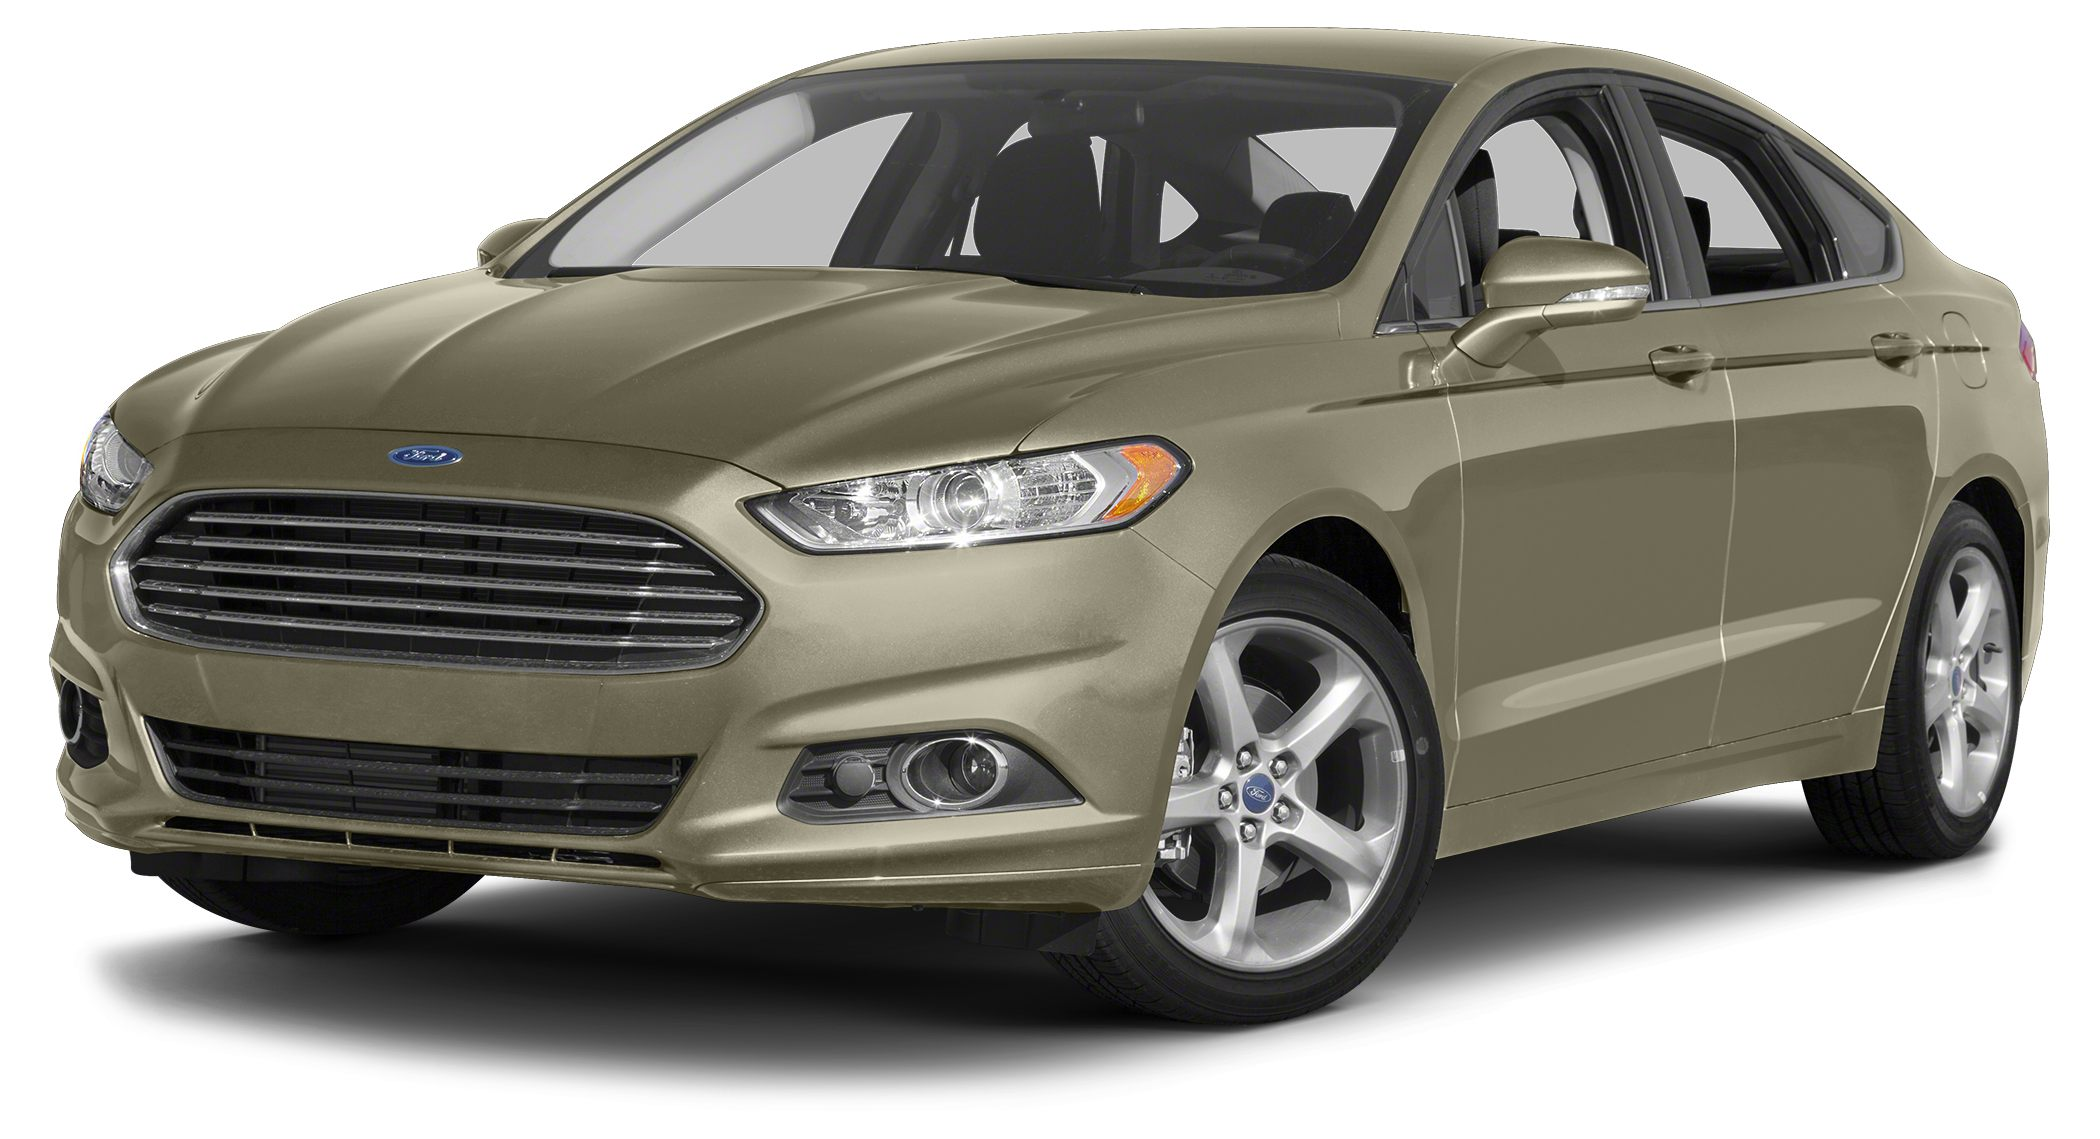 2013 Ford Fusion SE Visit Best Auto Group online at bronxbestautocom to see more pictures of this